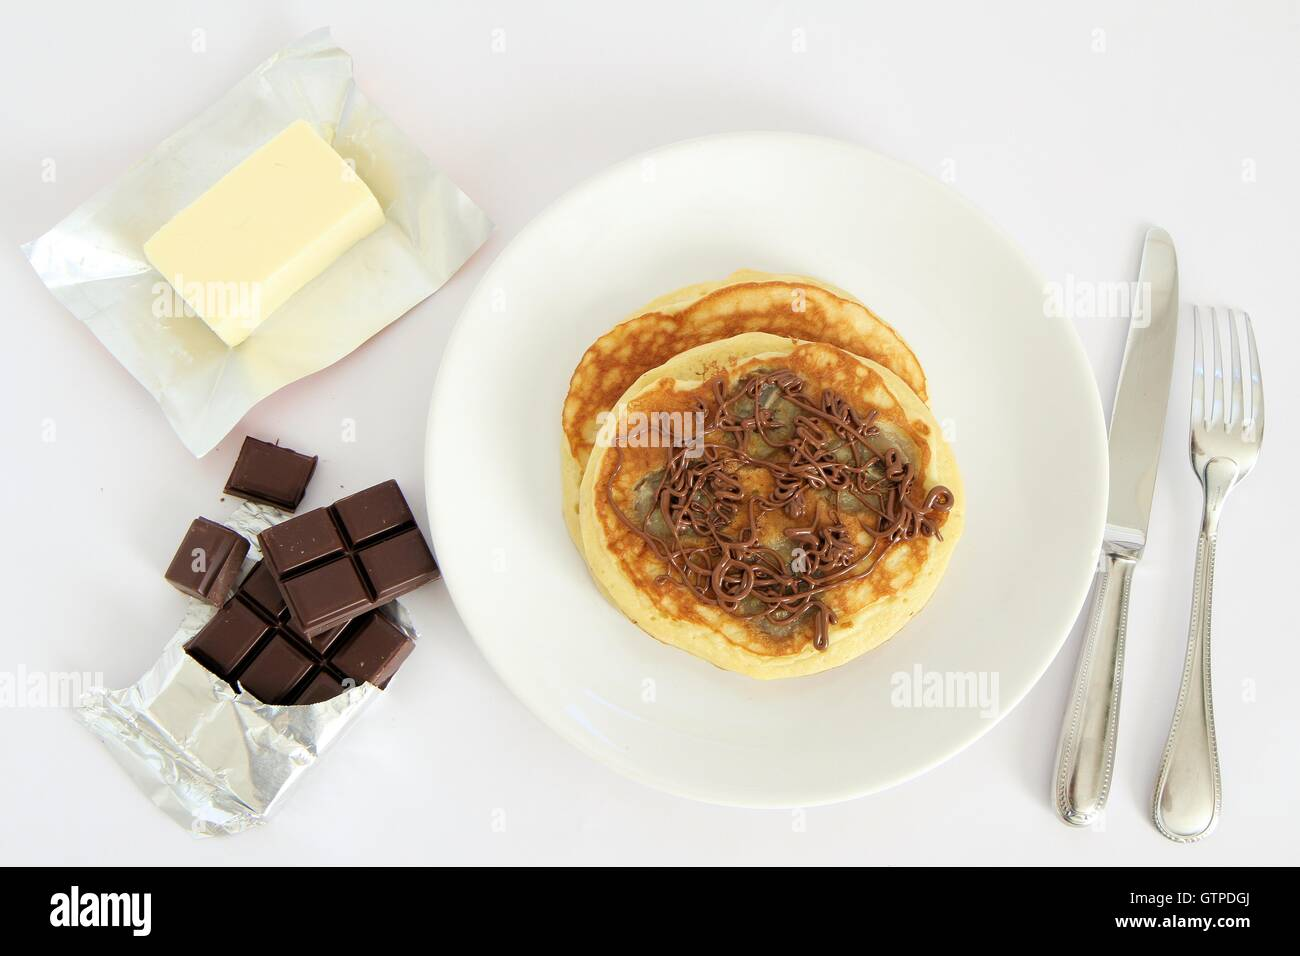 Banana pancakes drizzled with chocalate sauce - Stock Image